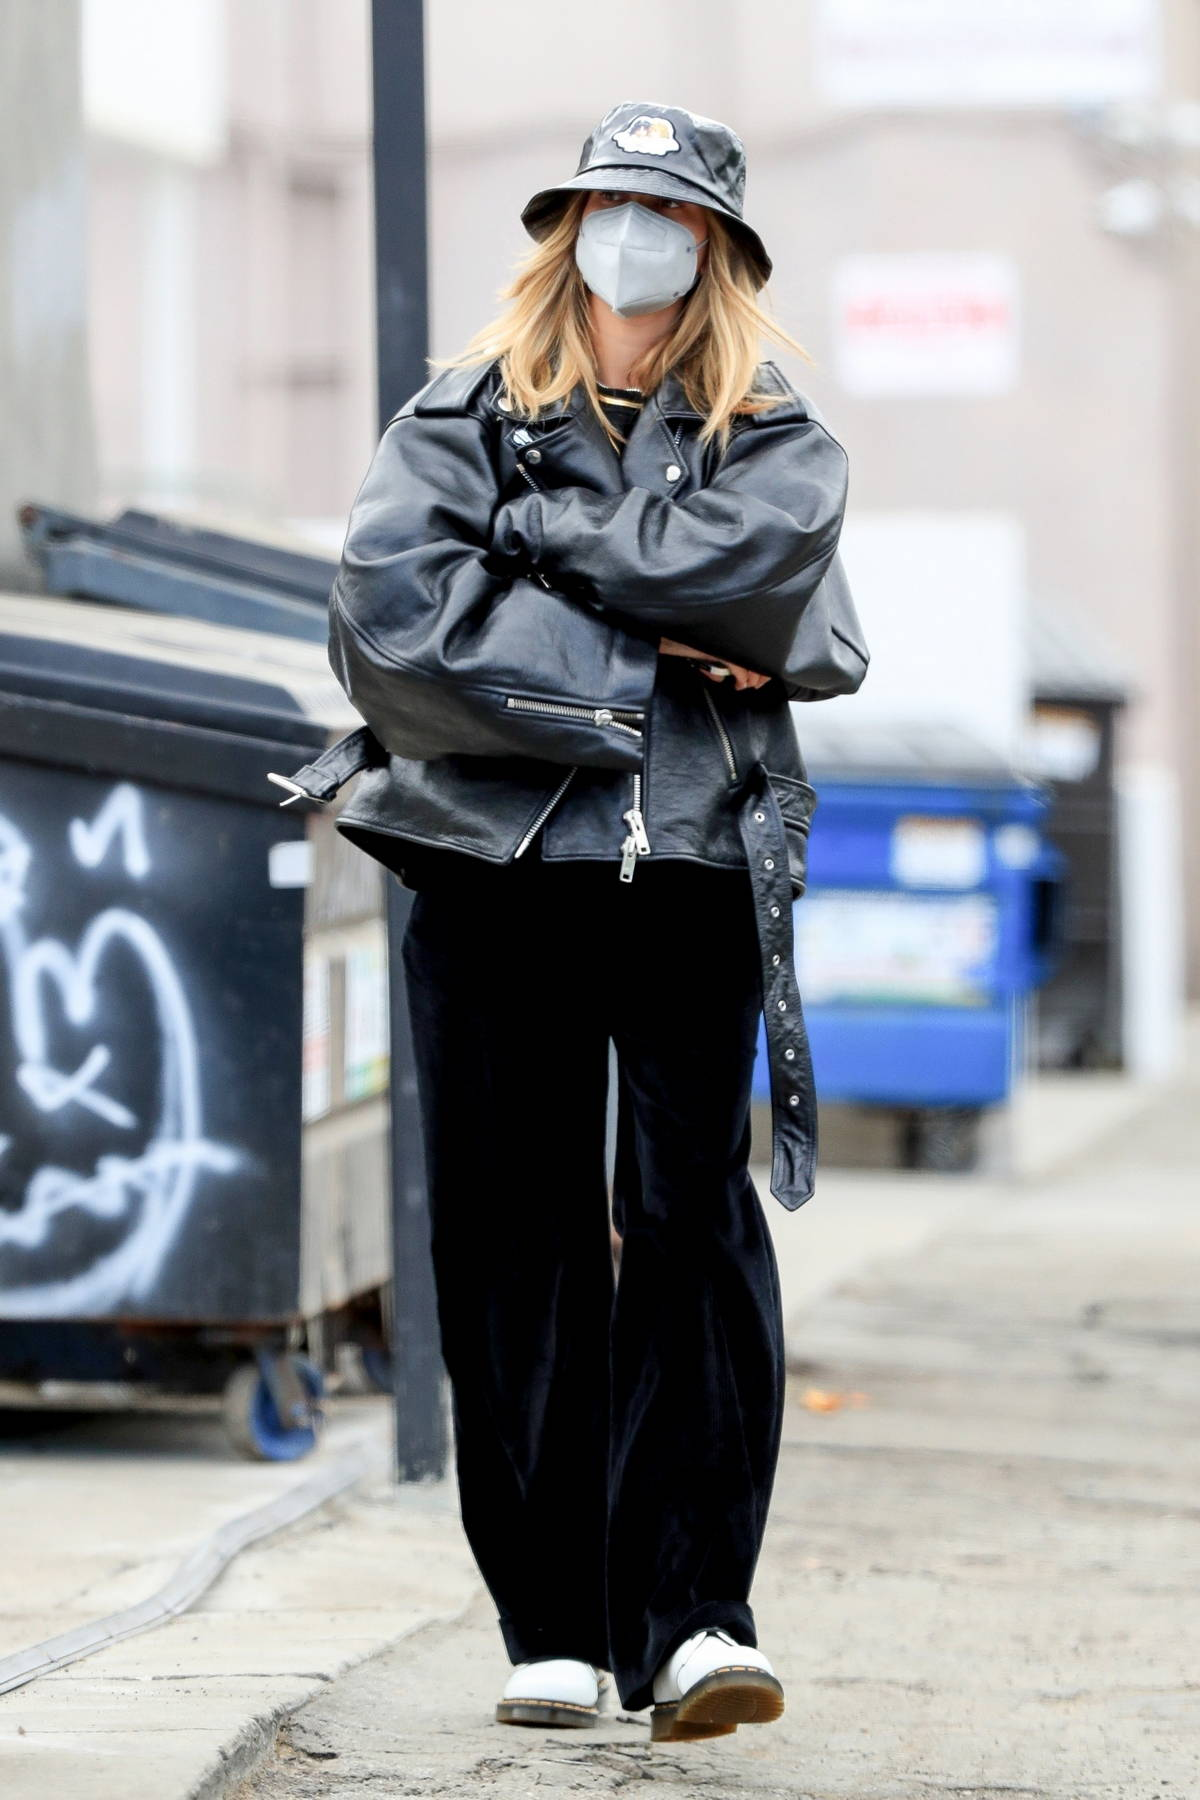 Hailey Bieber looks cool in an oversized leather jacket paired with a black bucket hat while out in West Hollywood, California